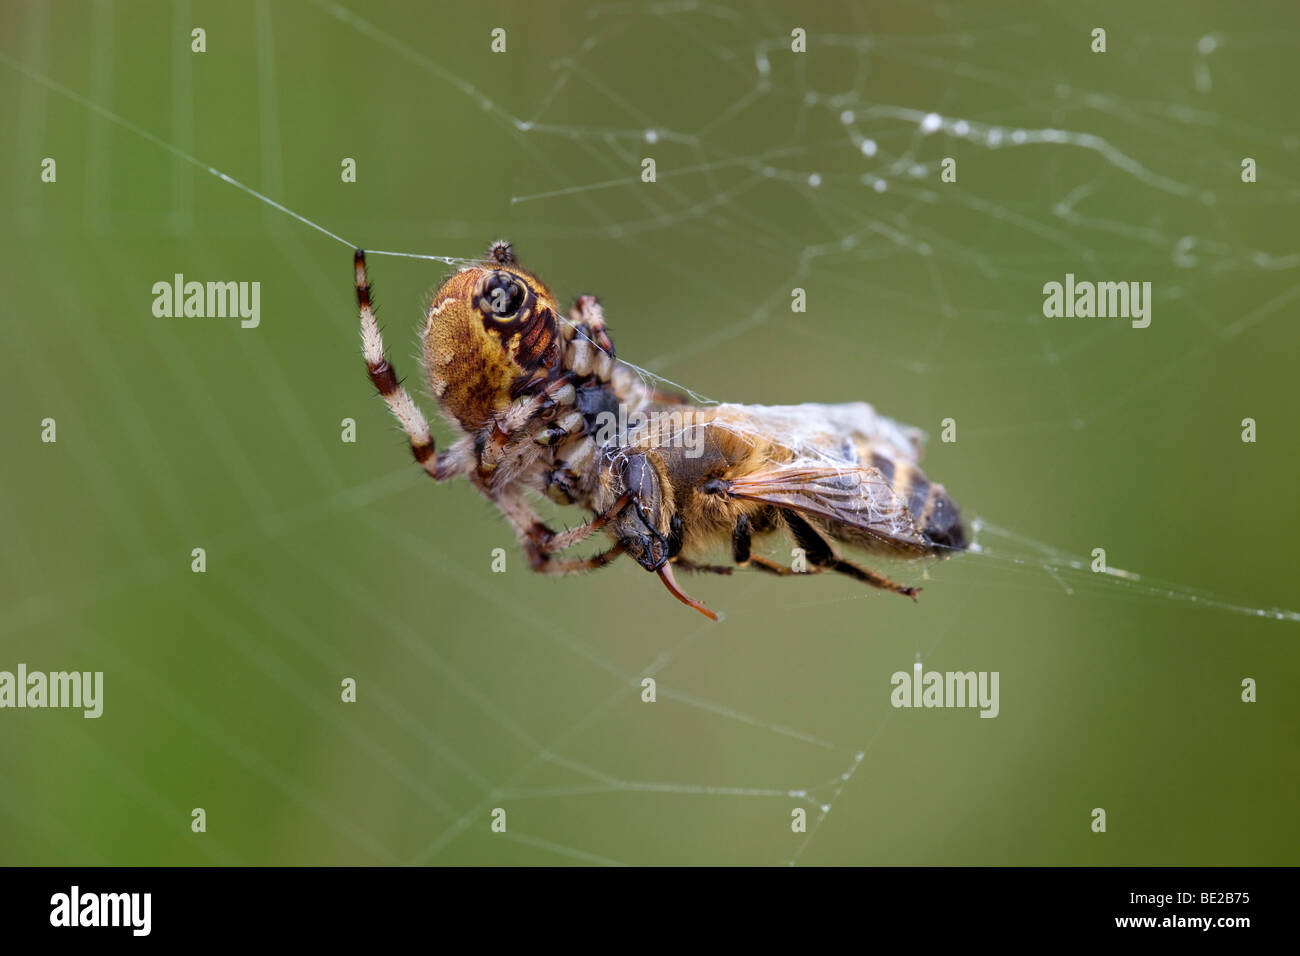 honey bee caught by spider in its web - Stock Image